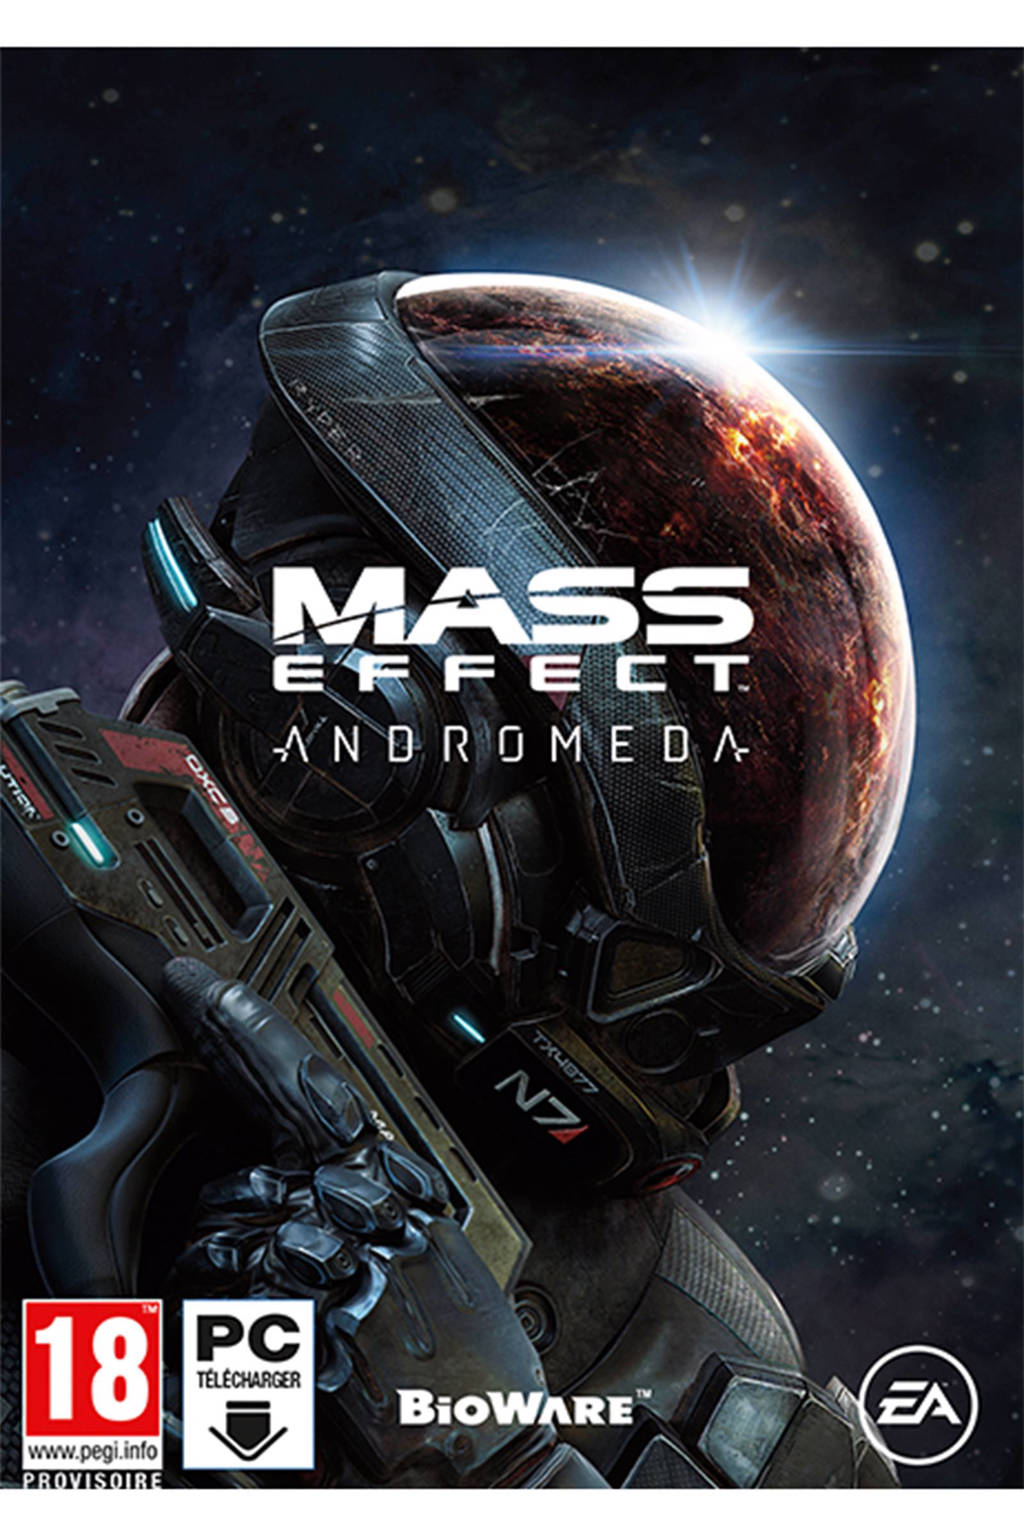 Mass Effect: Andromeda - download code (PC), PC DVD-ROM